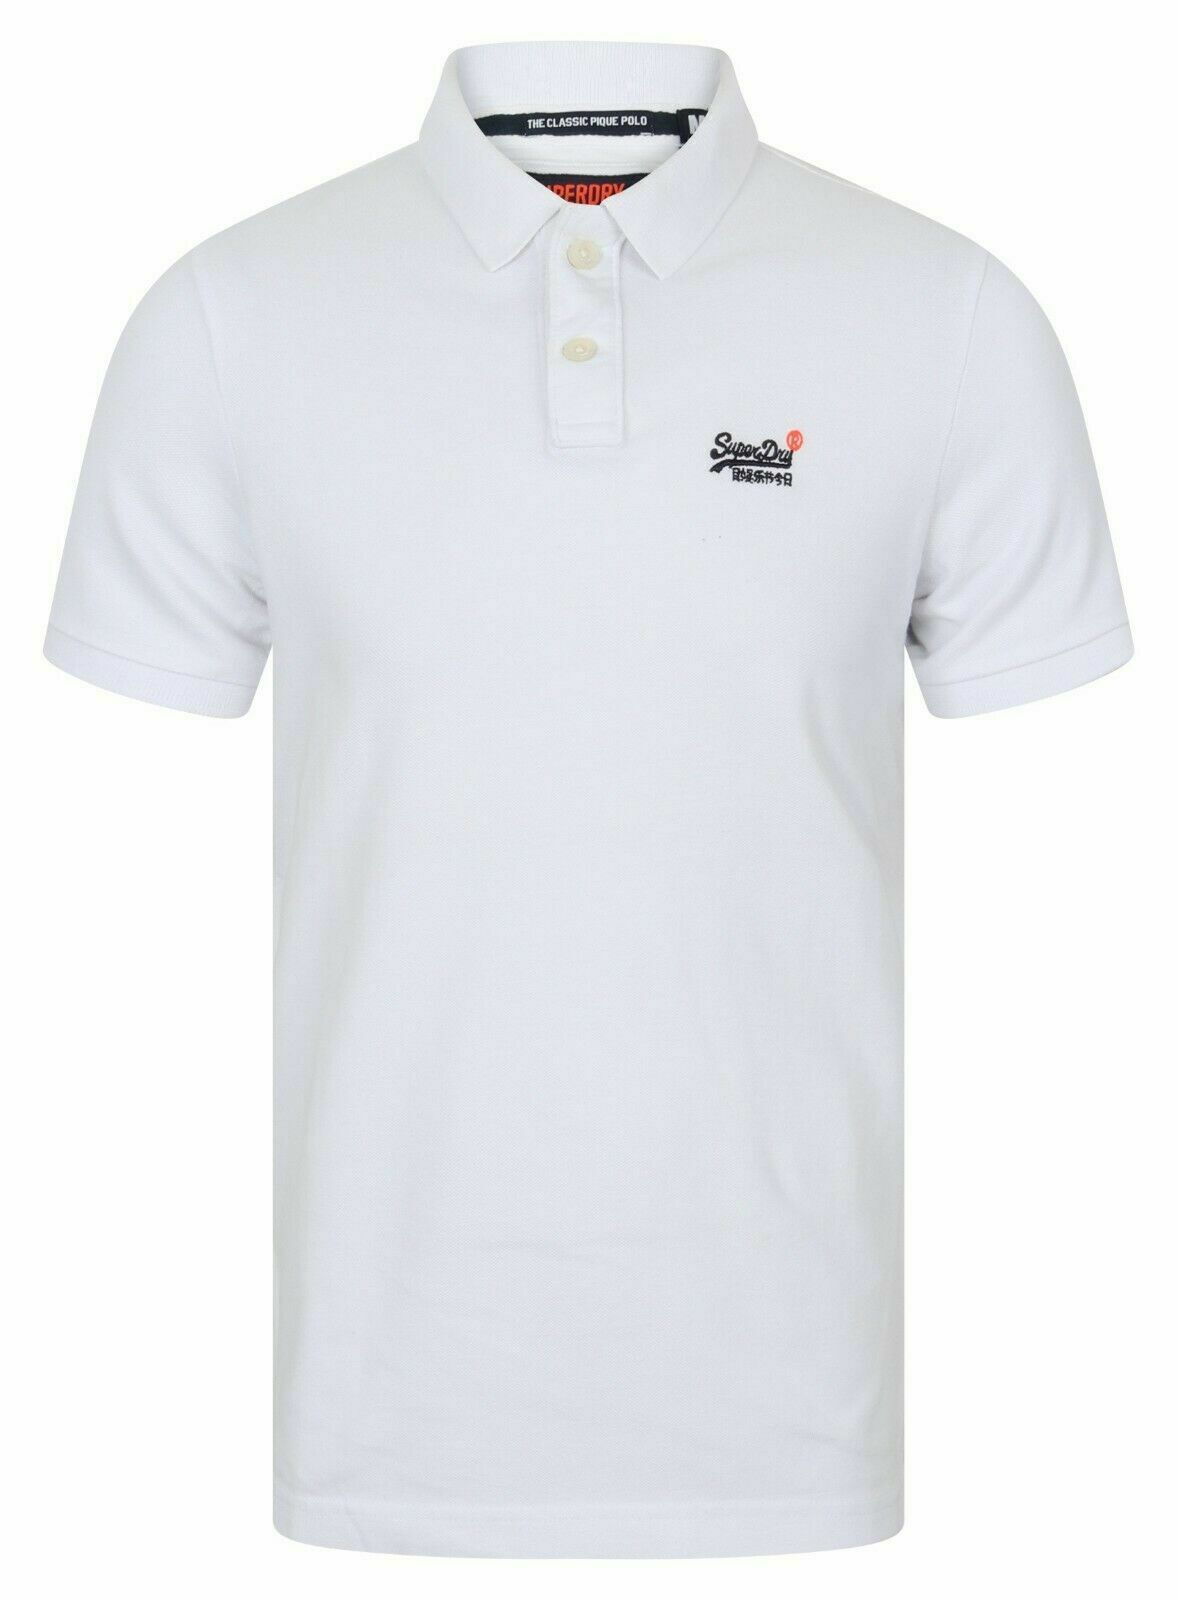 Mens Superdry Classic Short Sleeve Pique Polo Shirt T-Shirt Optic White